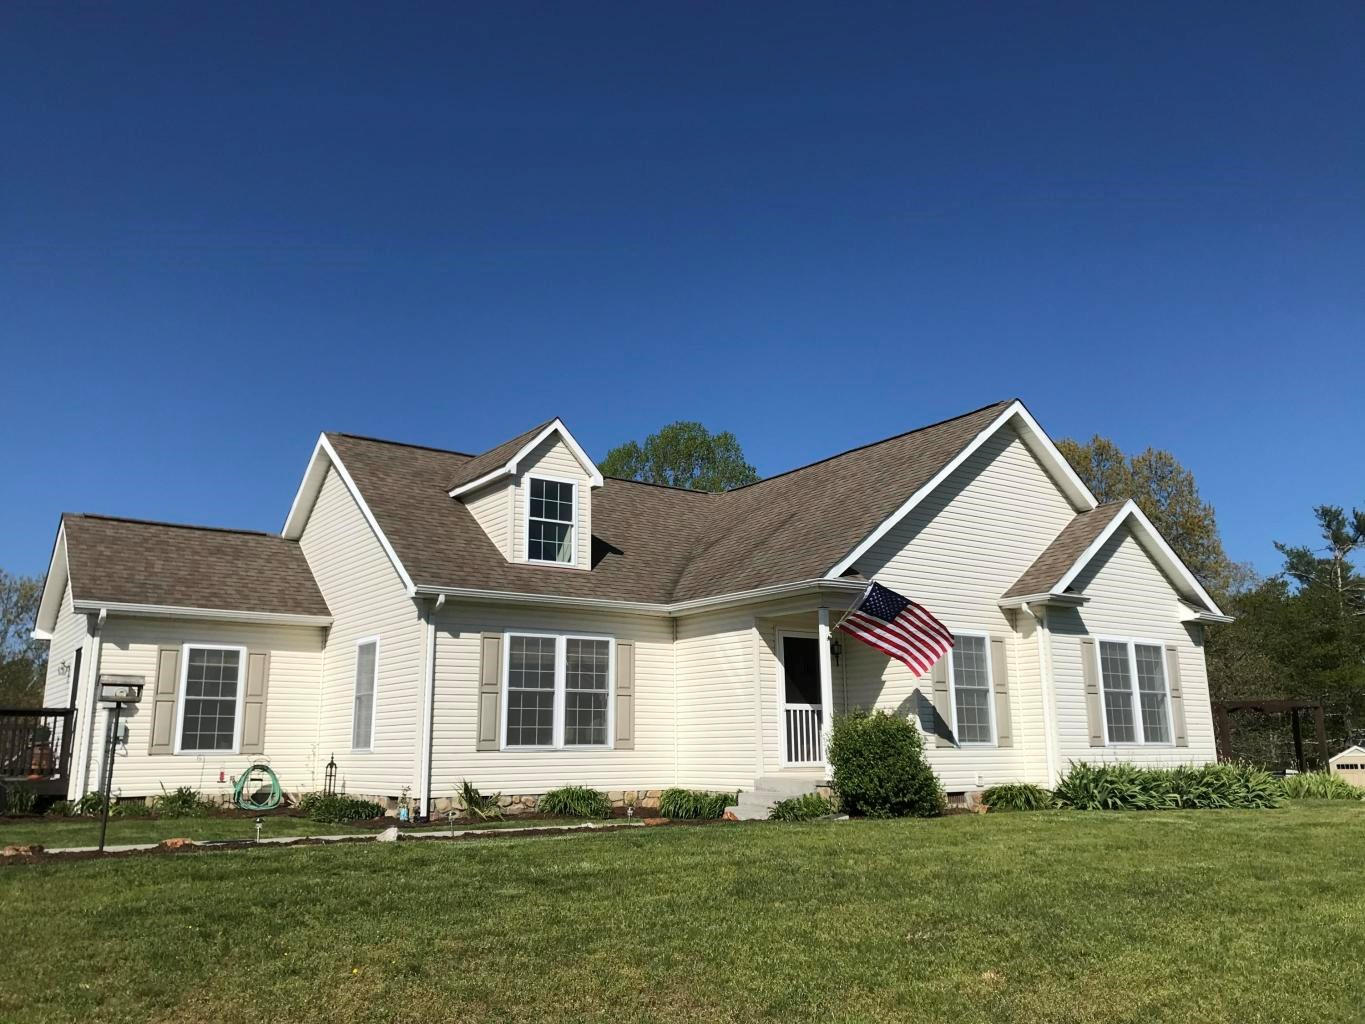 Country Home for Sale in Riner VA